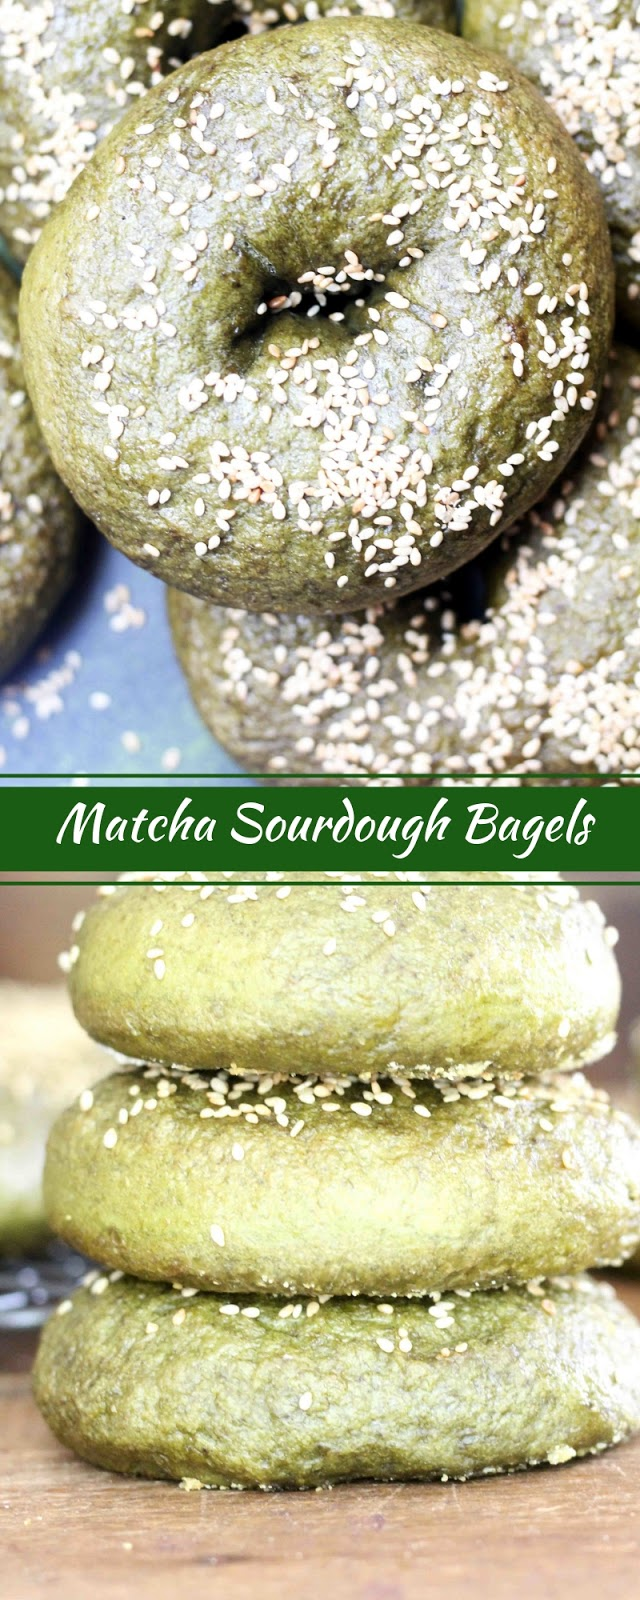 Matcha Sourdough Bagels